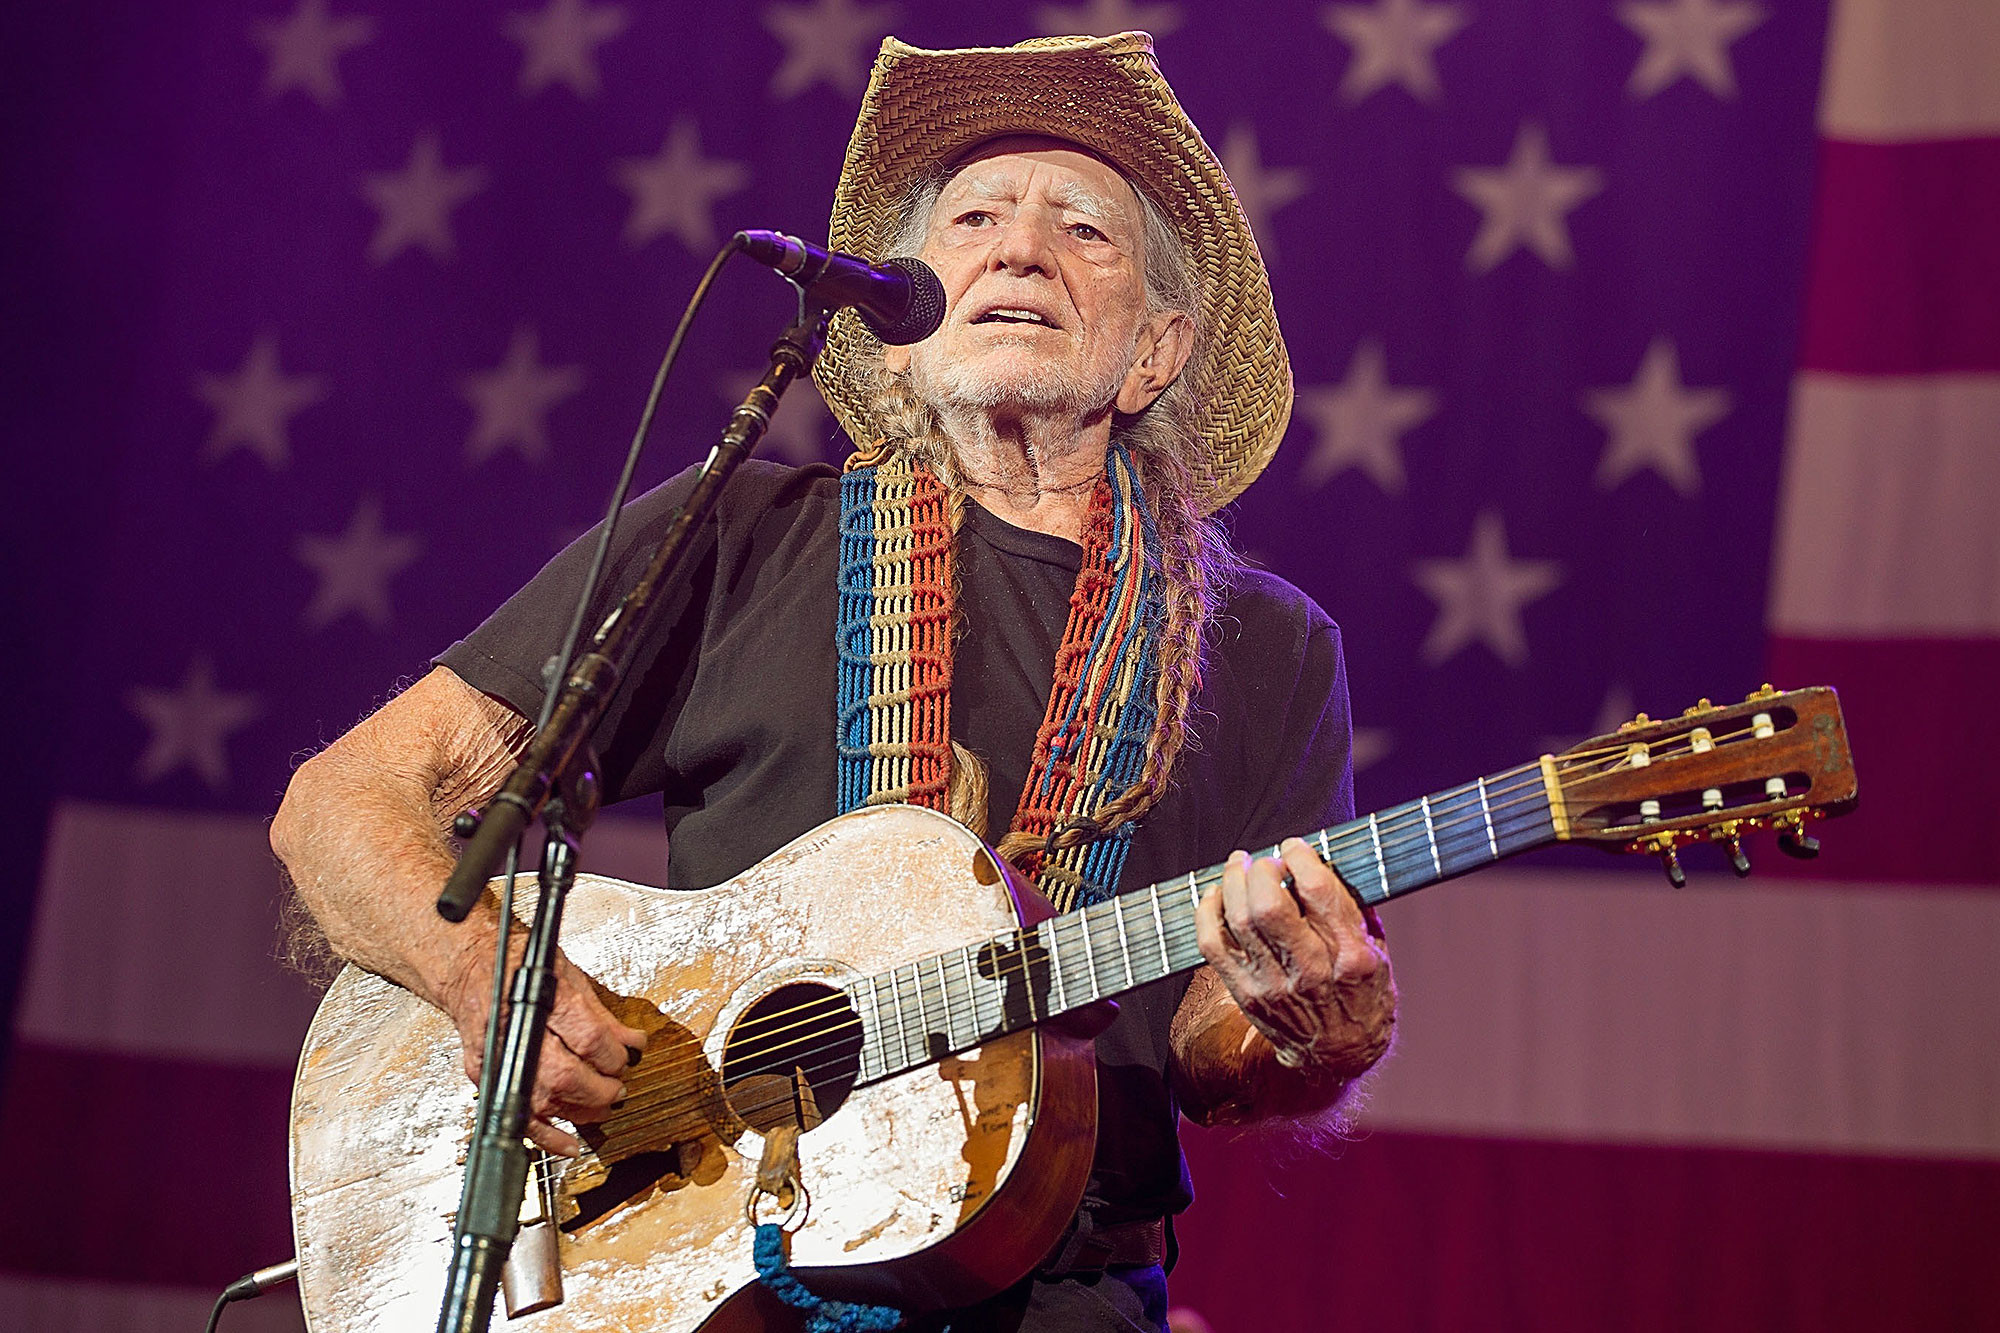 Willie Nelson Cancels February Tour Dates As He Has the Flu: 'I Will See You All Down the Road'